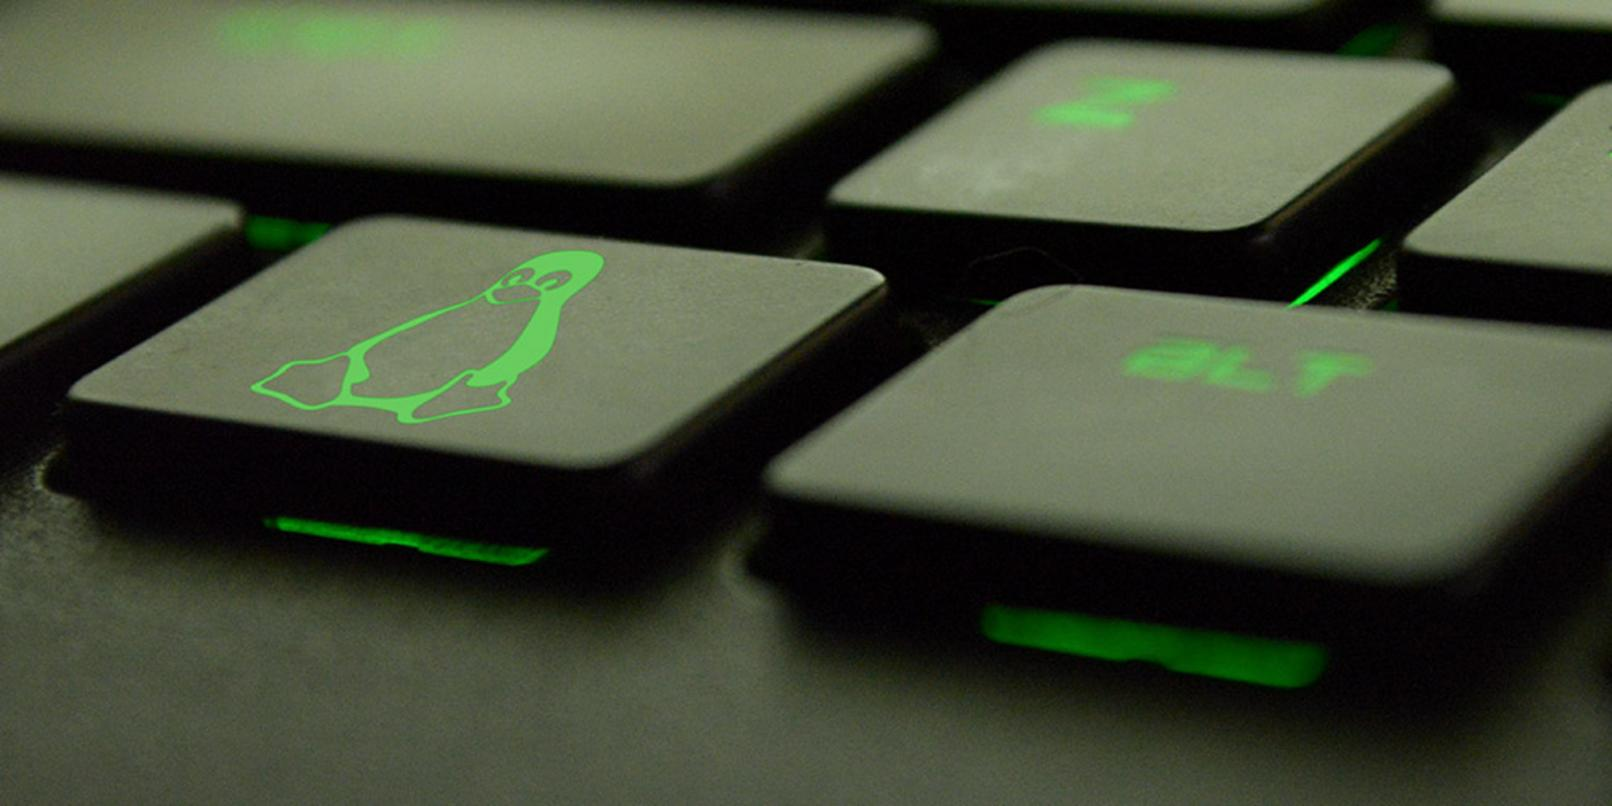 Run Linux like a power user with this immersive training for under $20